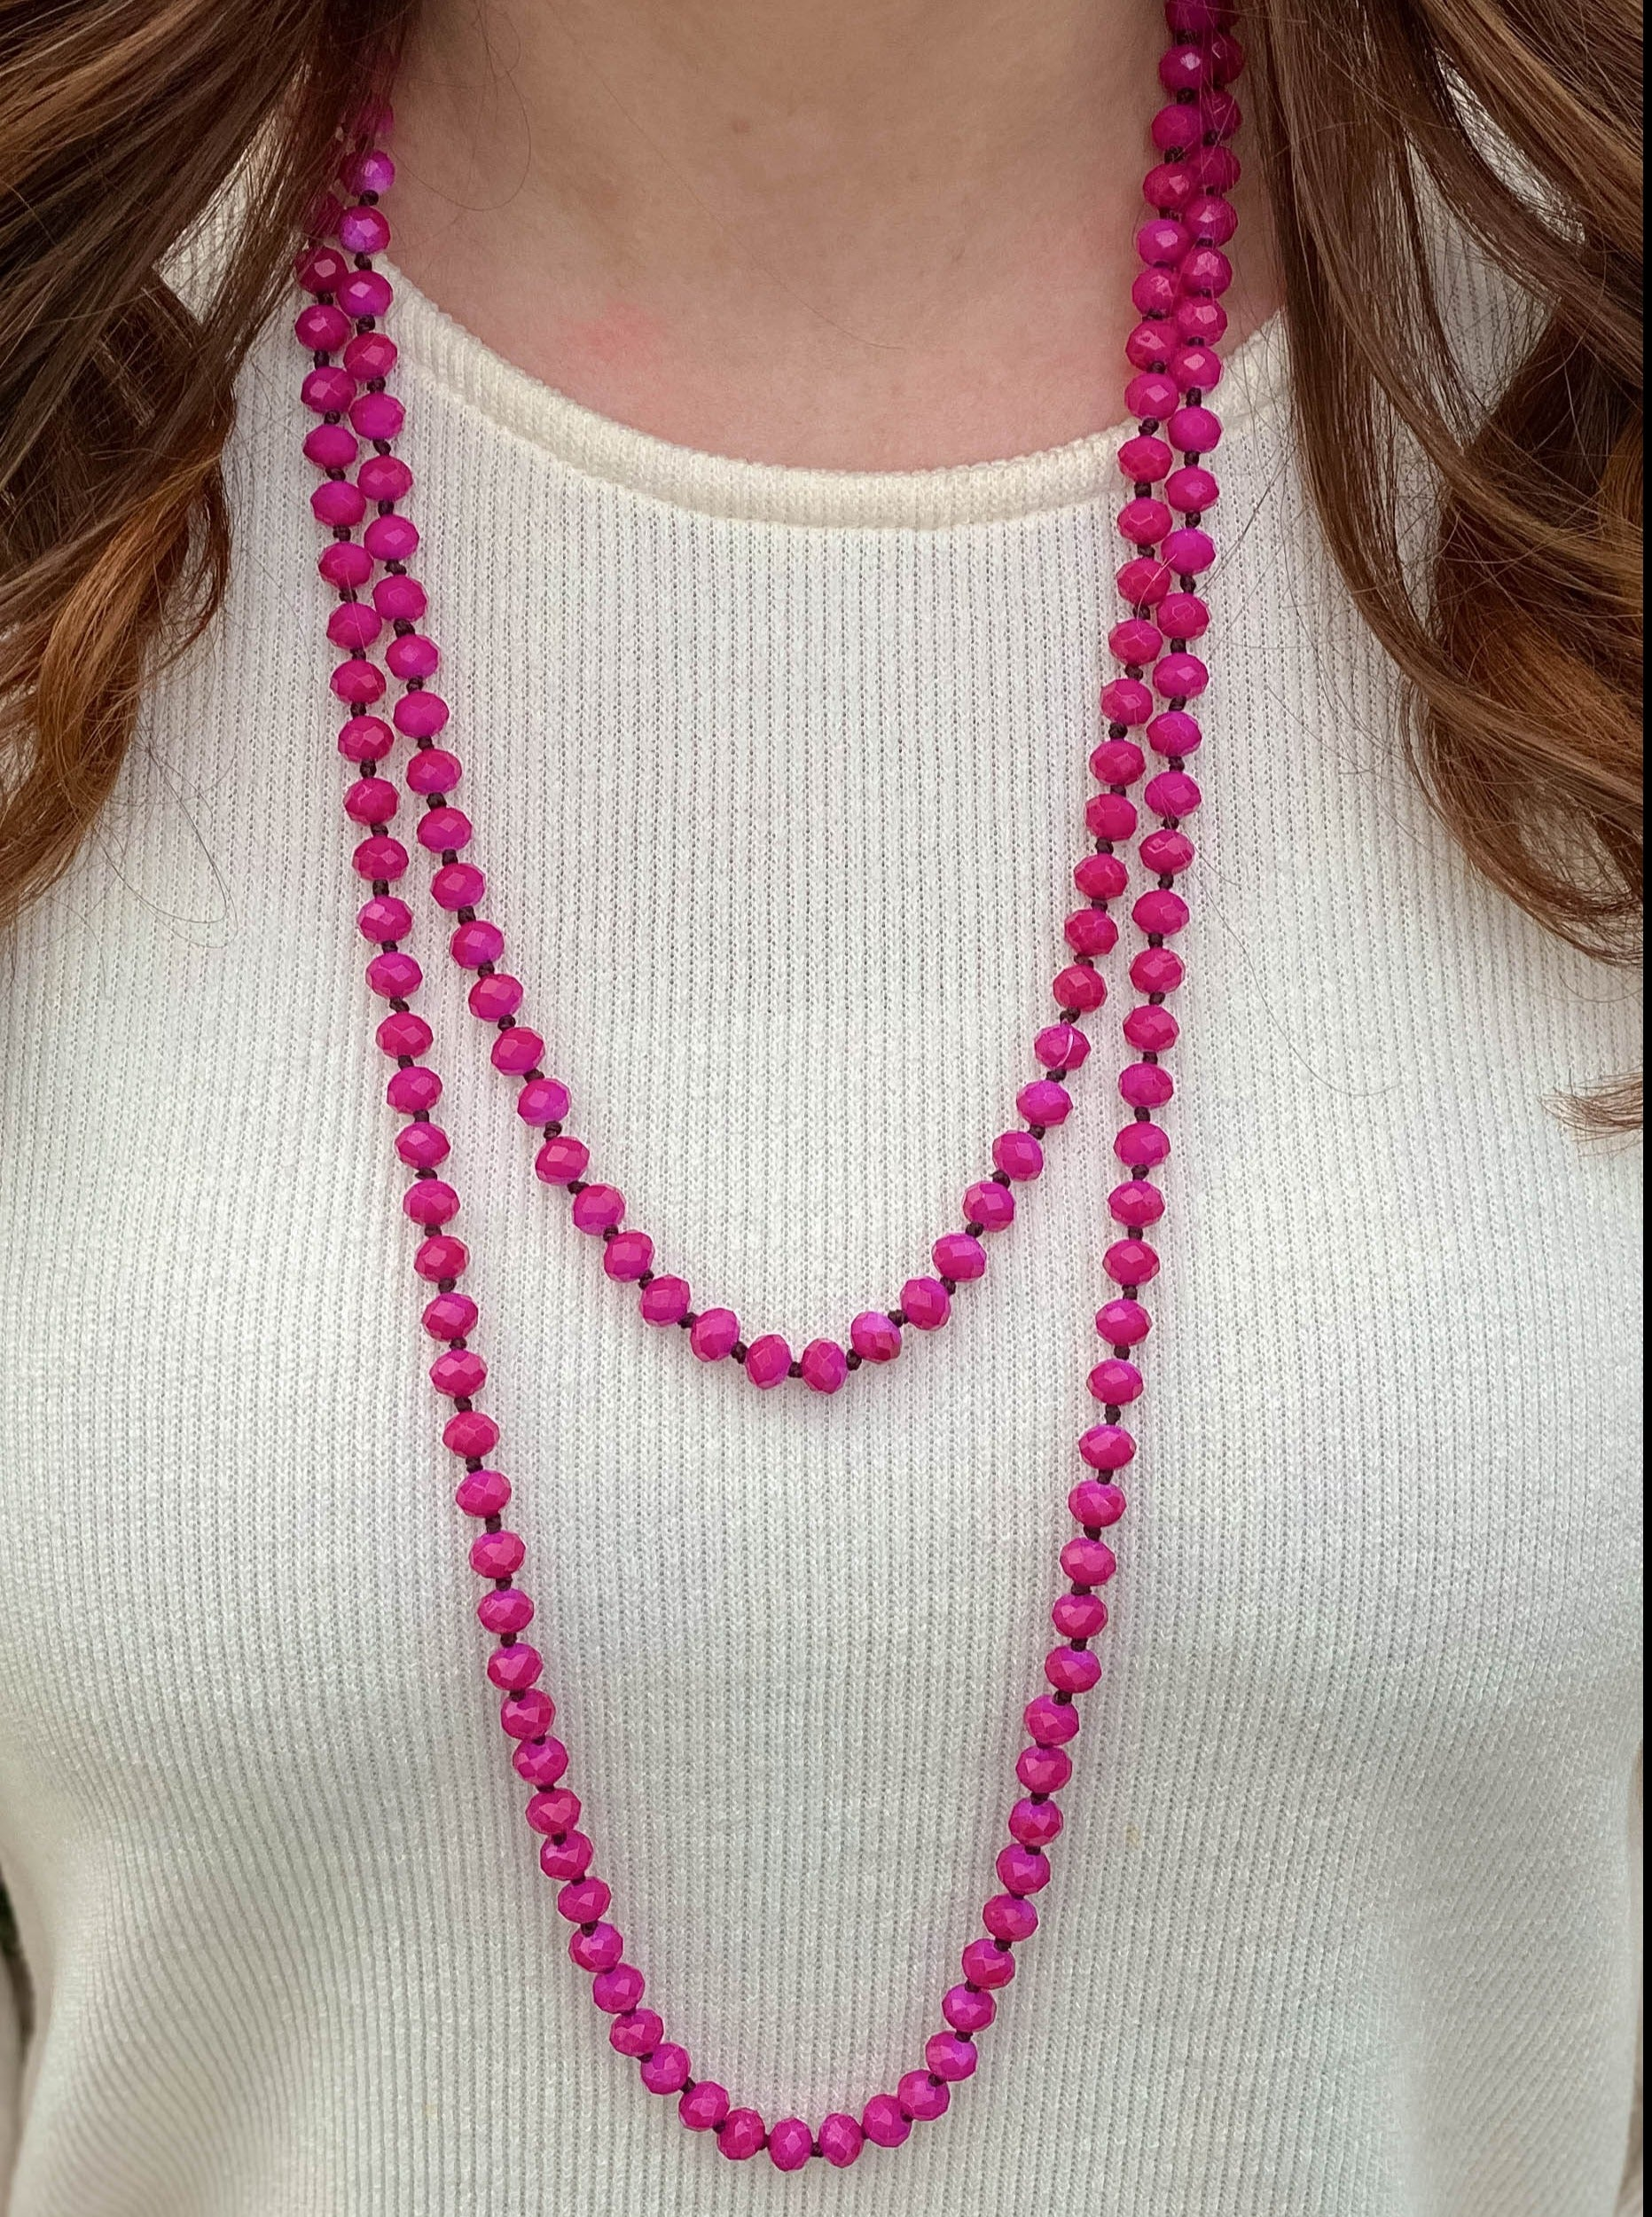 60 inch Pink Beaded Necklace